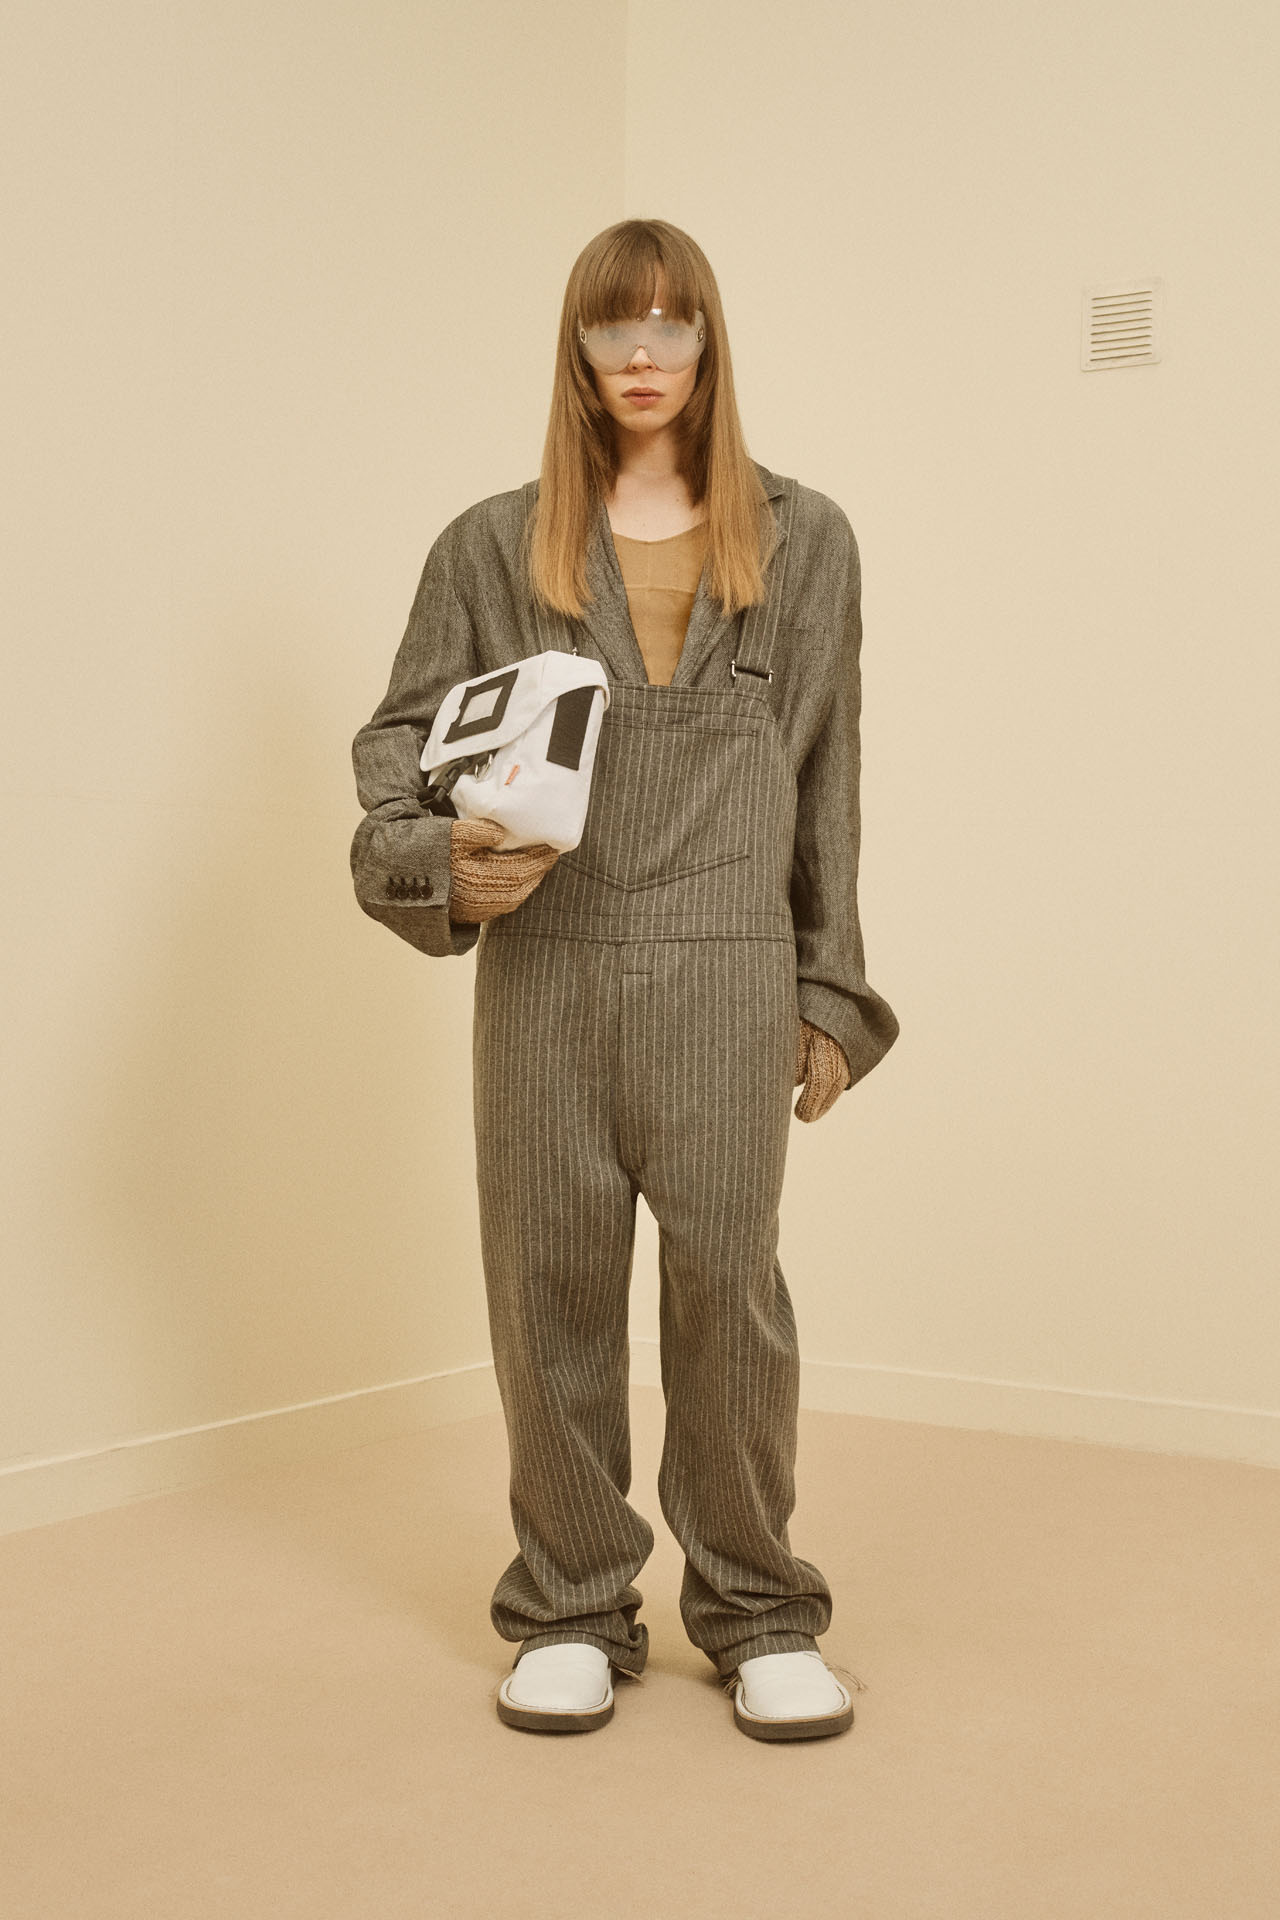 Look Fall/Winter 2021, image 3